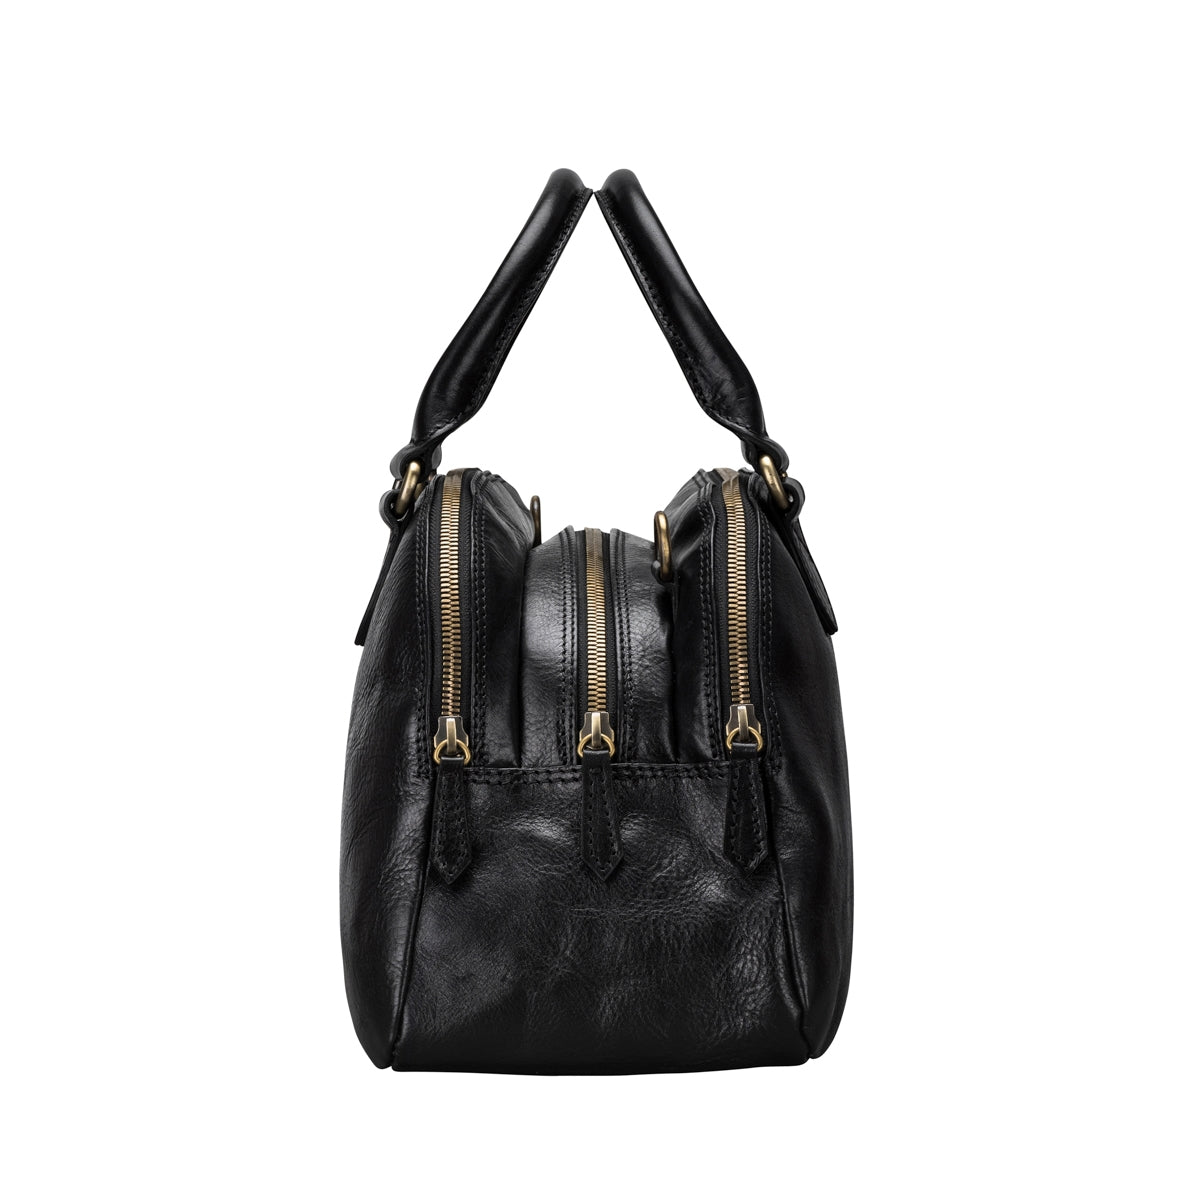 Image 3 of the 'Liliana' Black Veg-Tanned Leather Bowling Bag